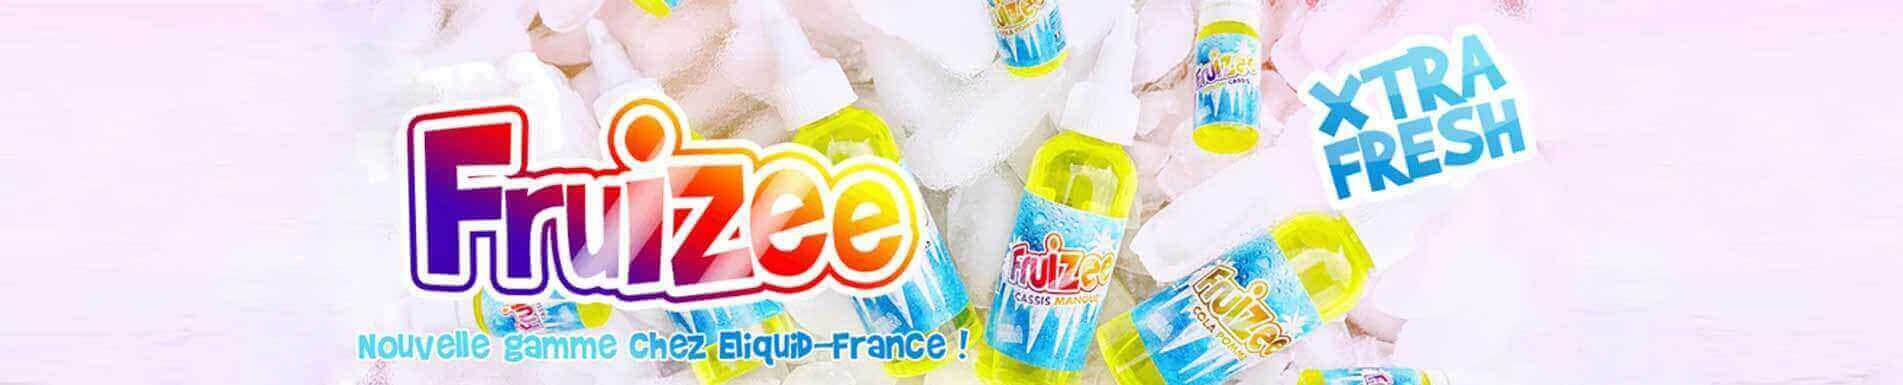 fruizee e liquid france xtra fresh